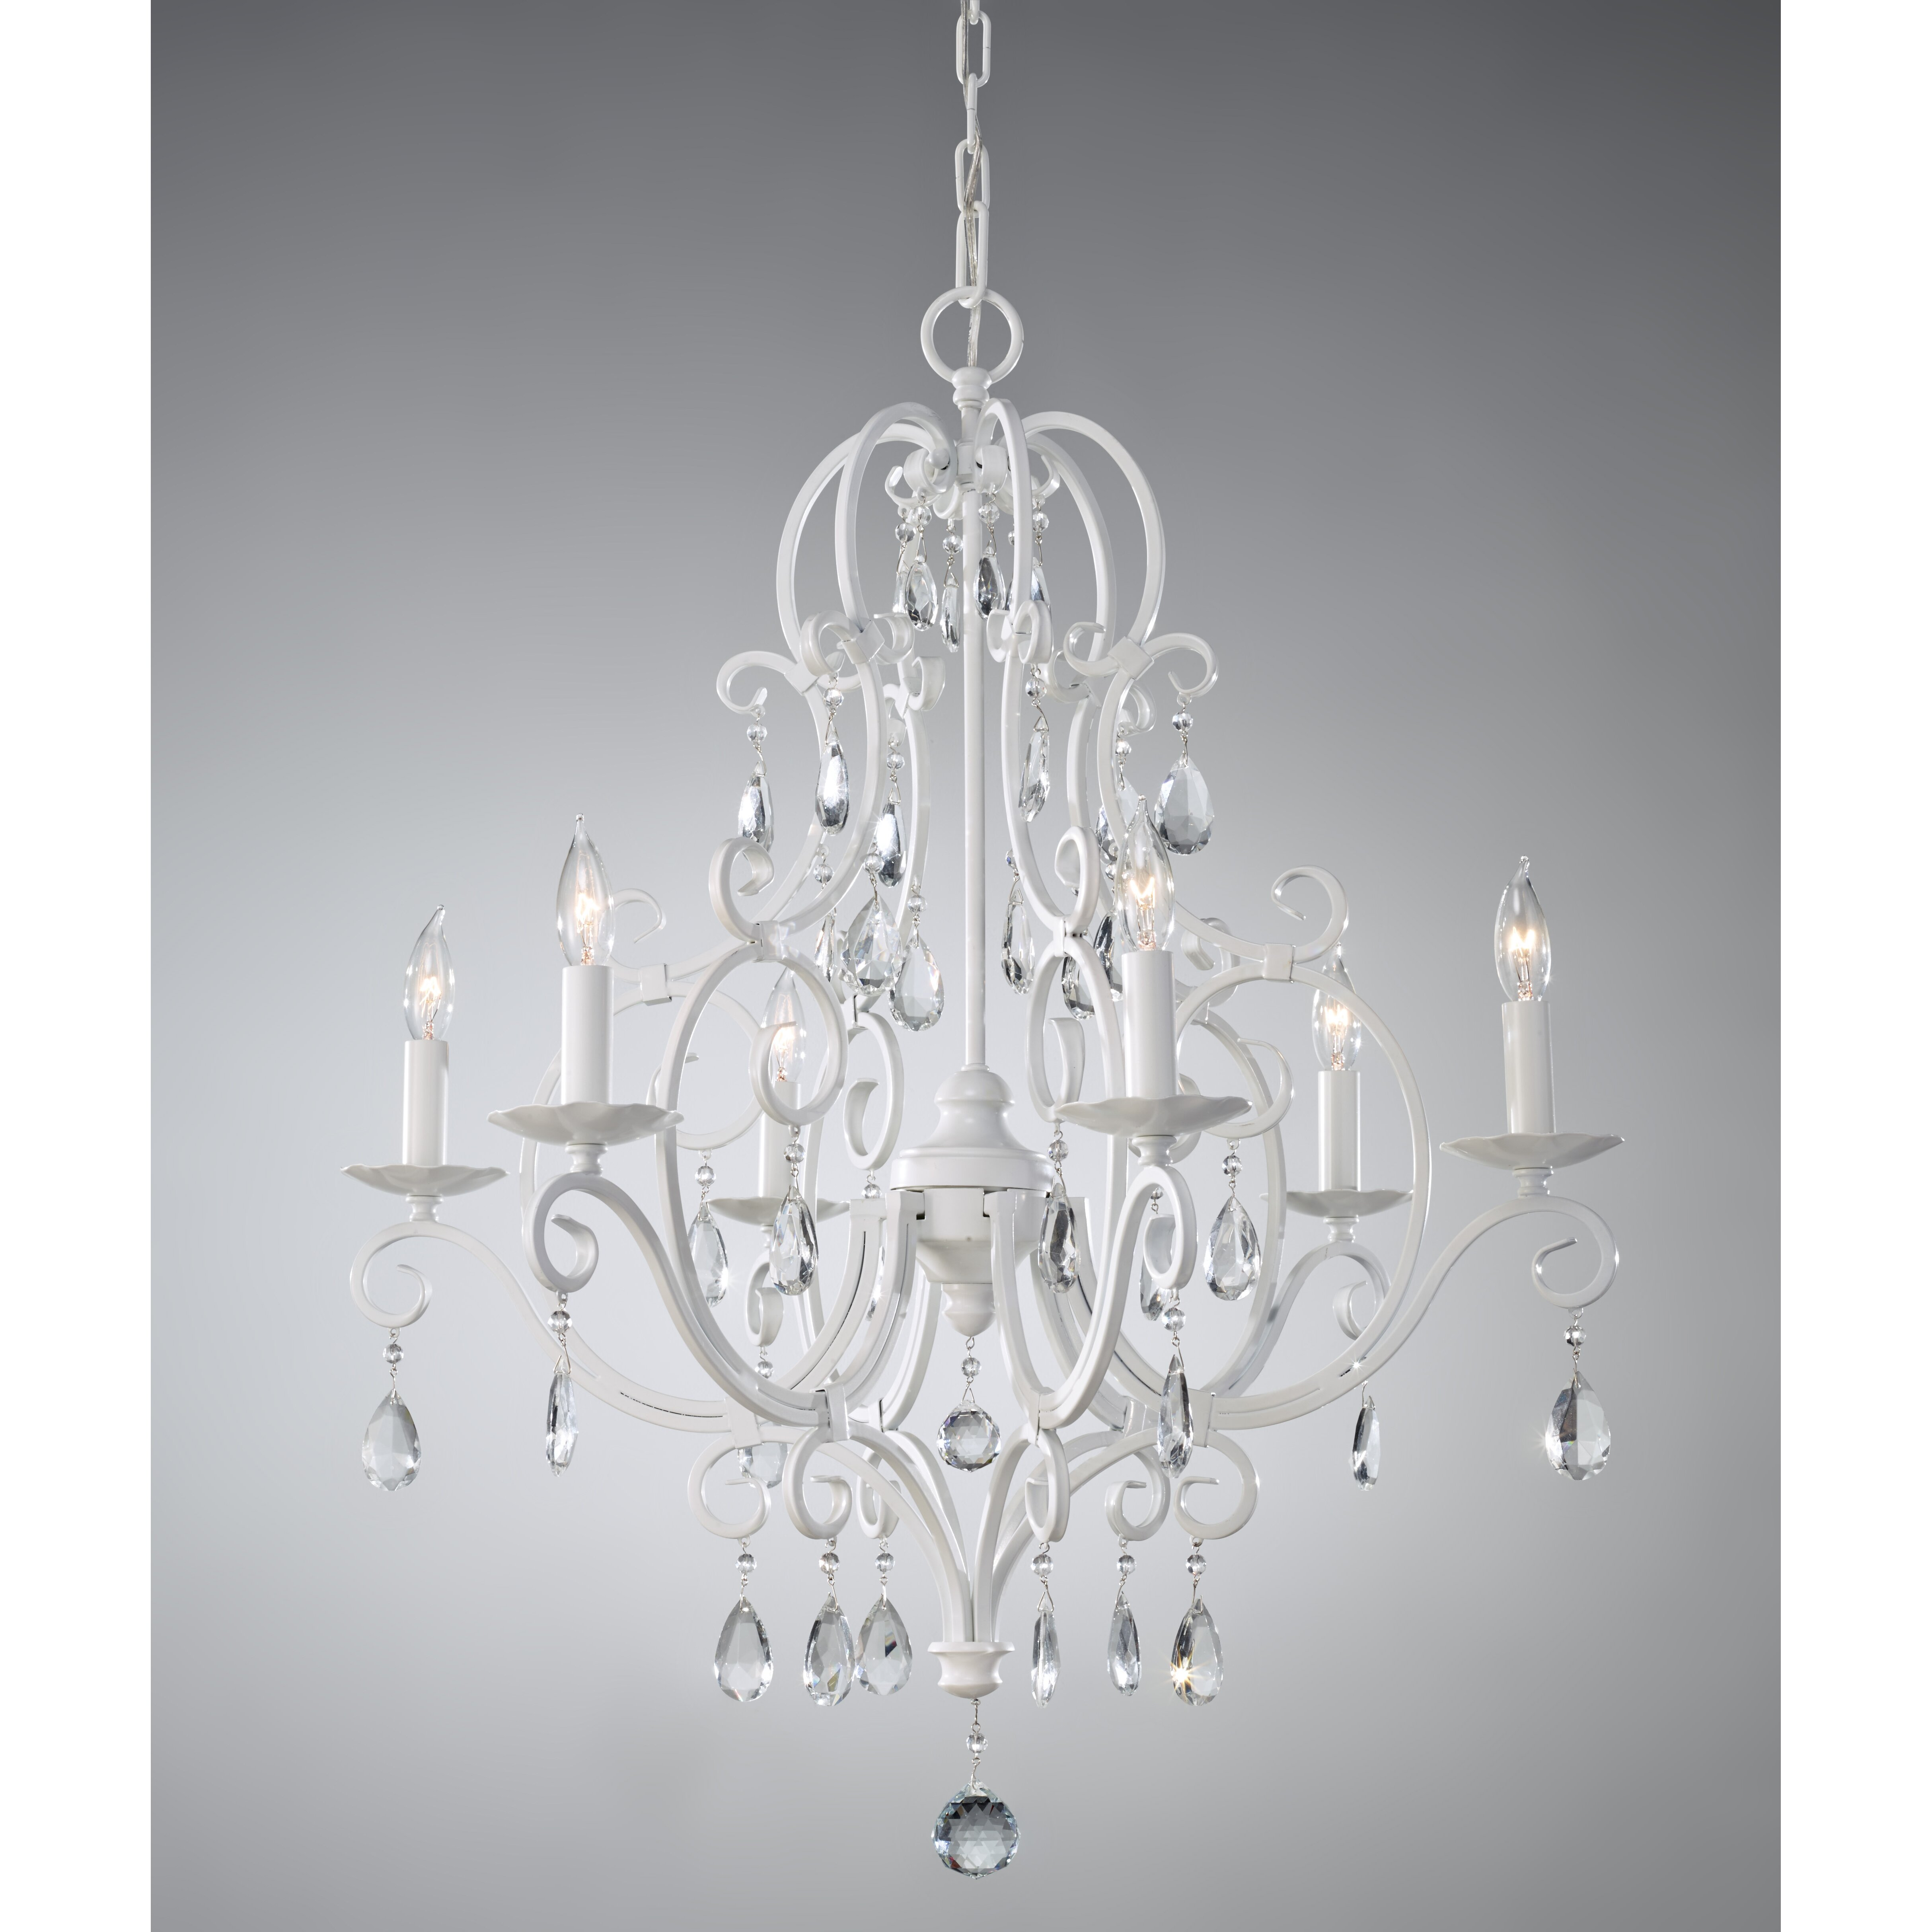 Feiss chateau blanc 6 light crystal chandelier reviews for 6 light crystal chandelier